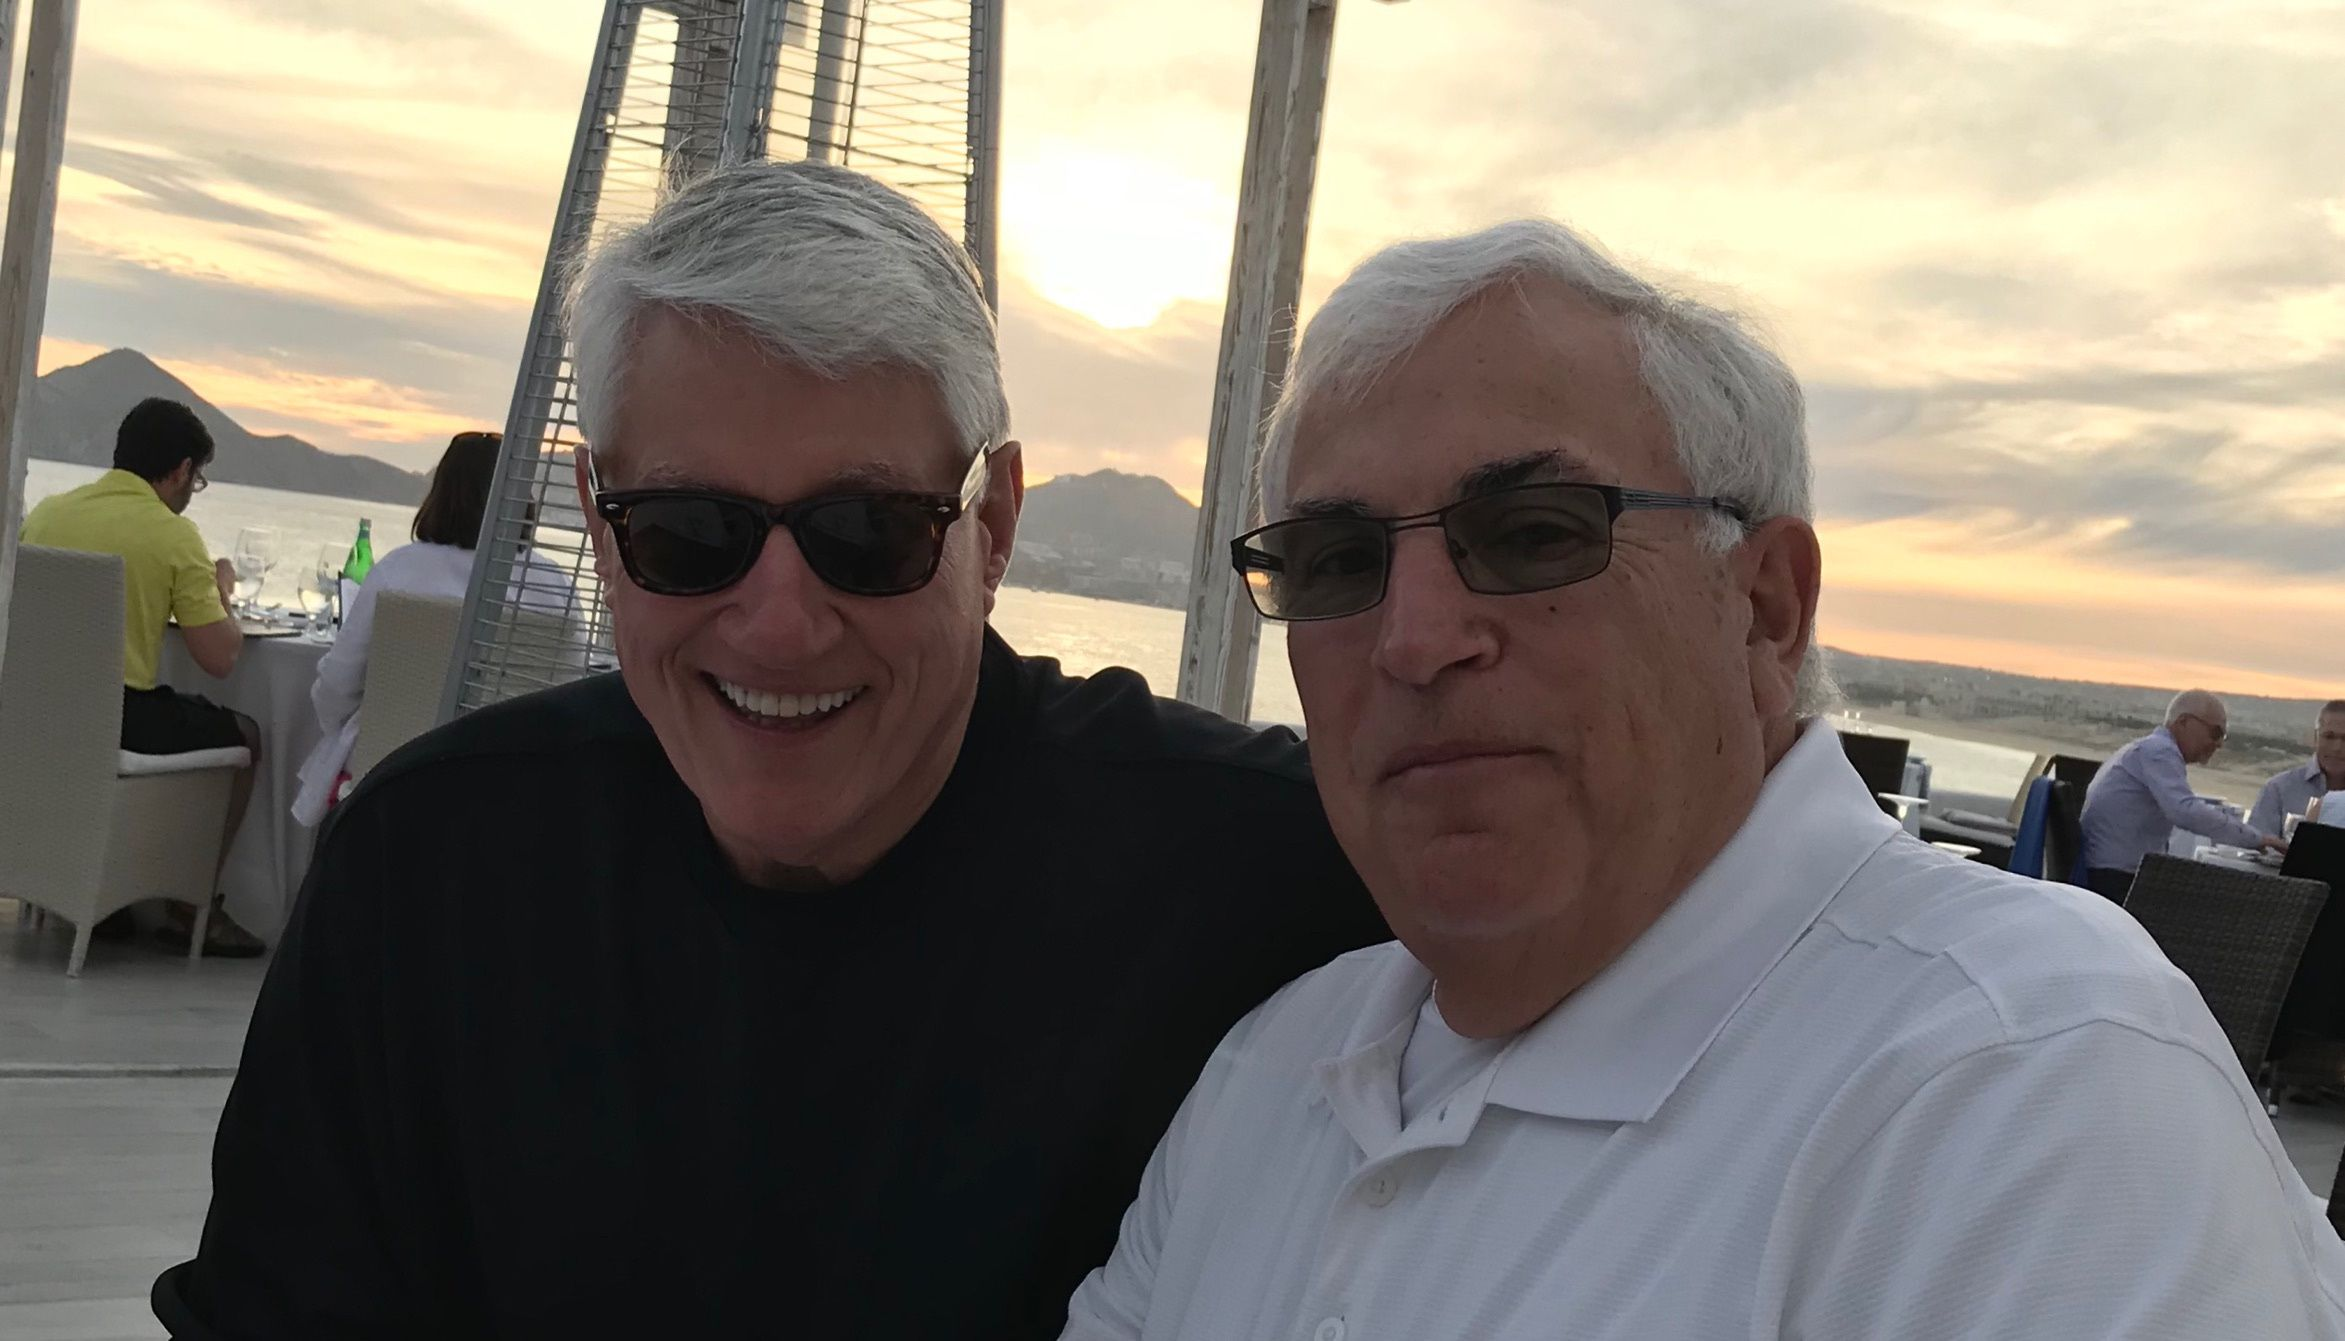 Bill Hewgley (left) and John Hewgley (right) | Owners. Operators. Brothers.